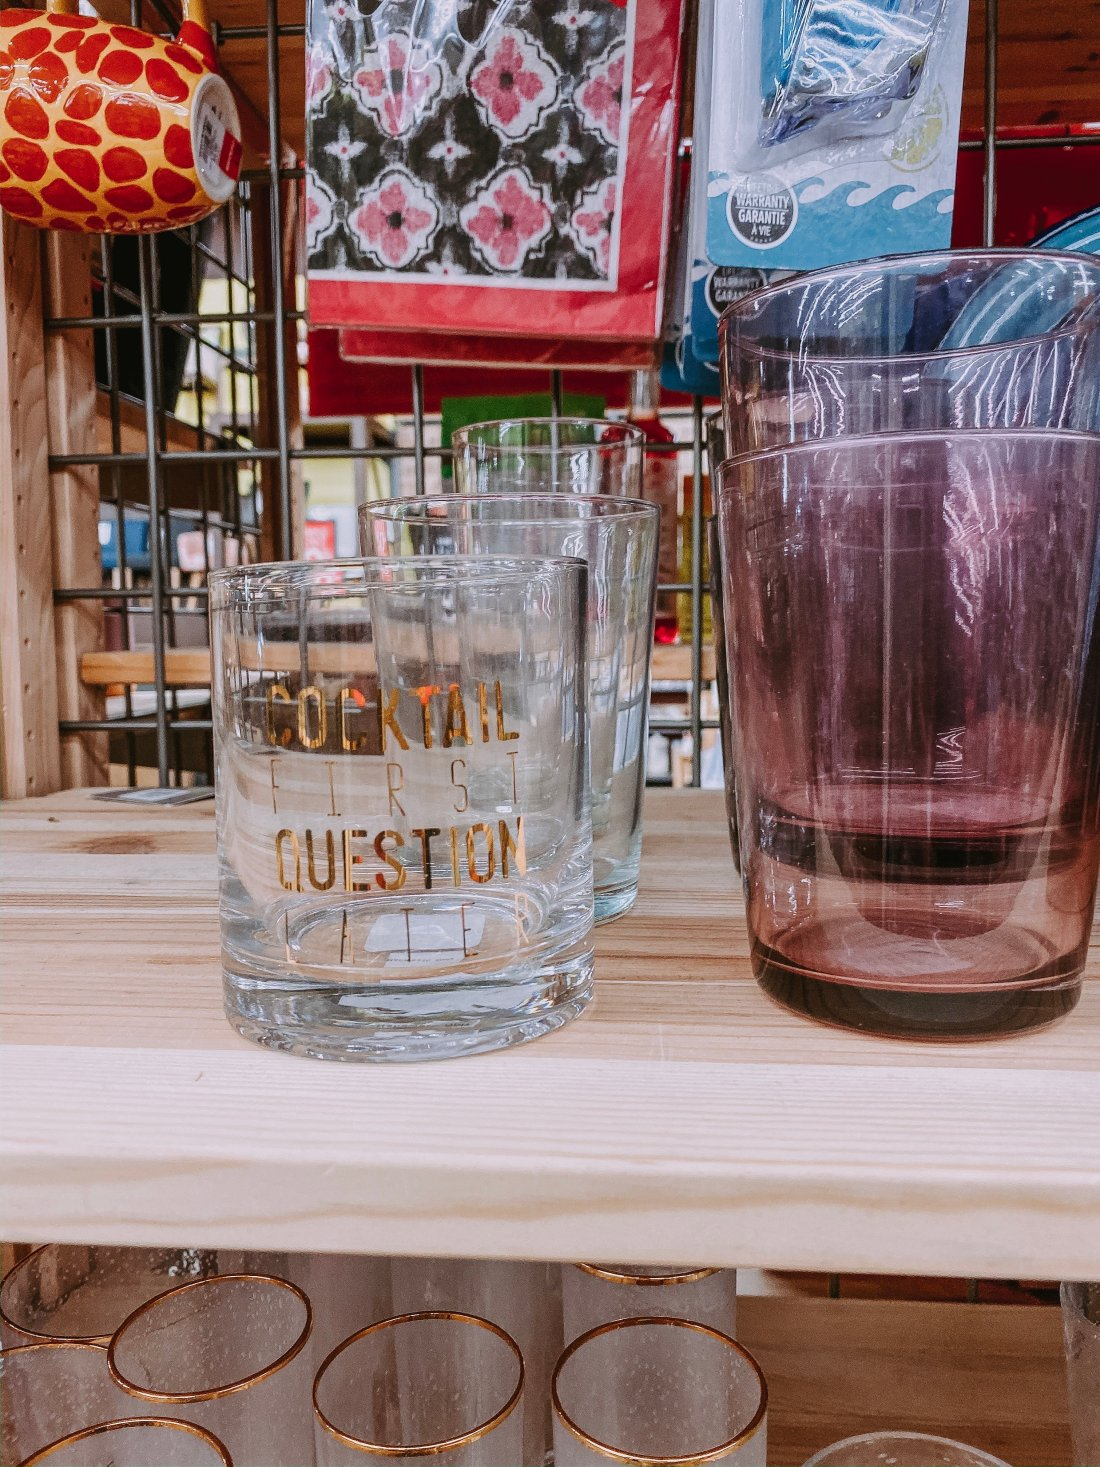 If you are looking for new drinkware. Cost Plus World Market has the best selection   #drinkware #cocktails #mocktails #homedecor